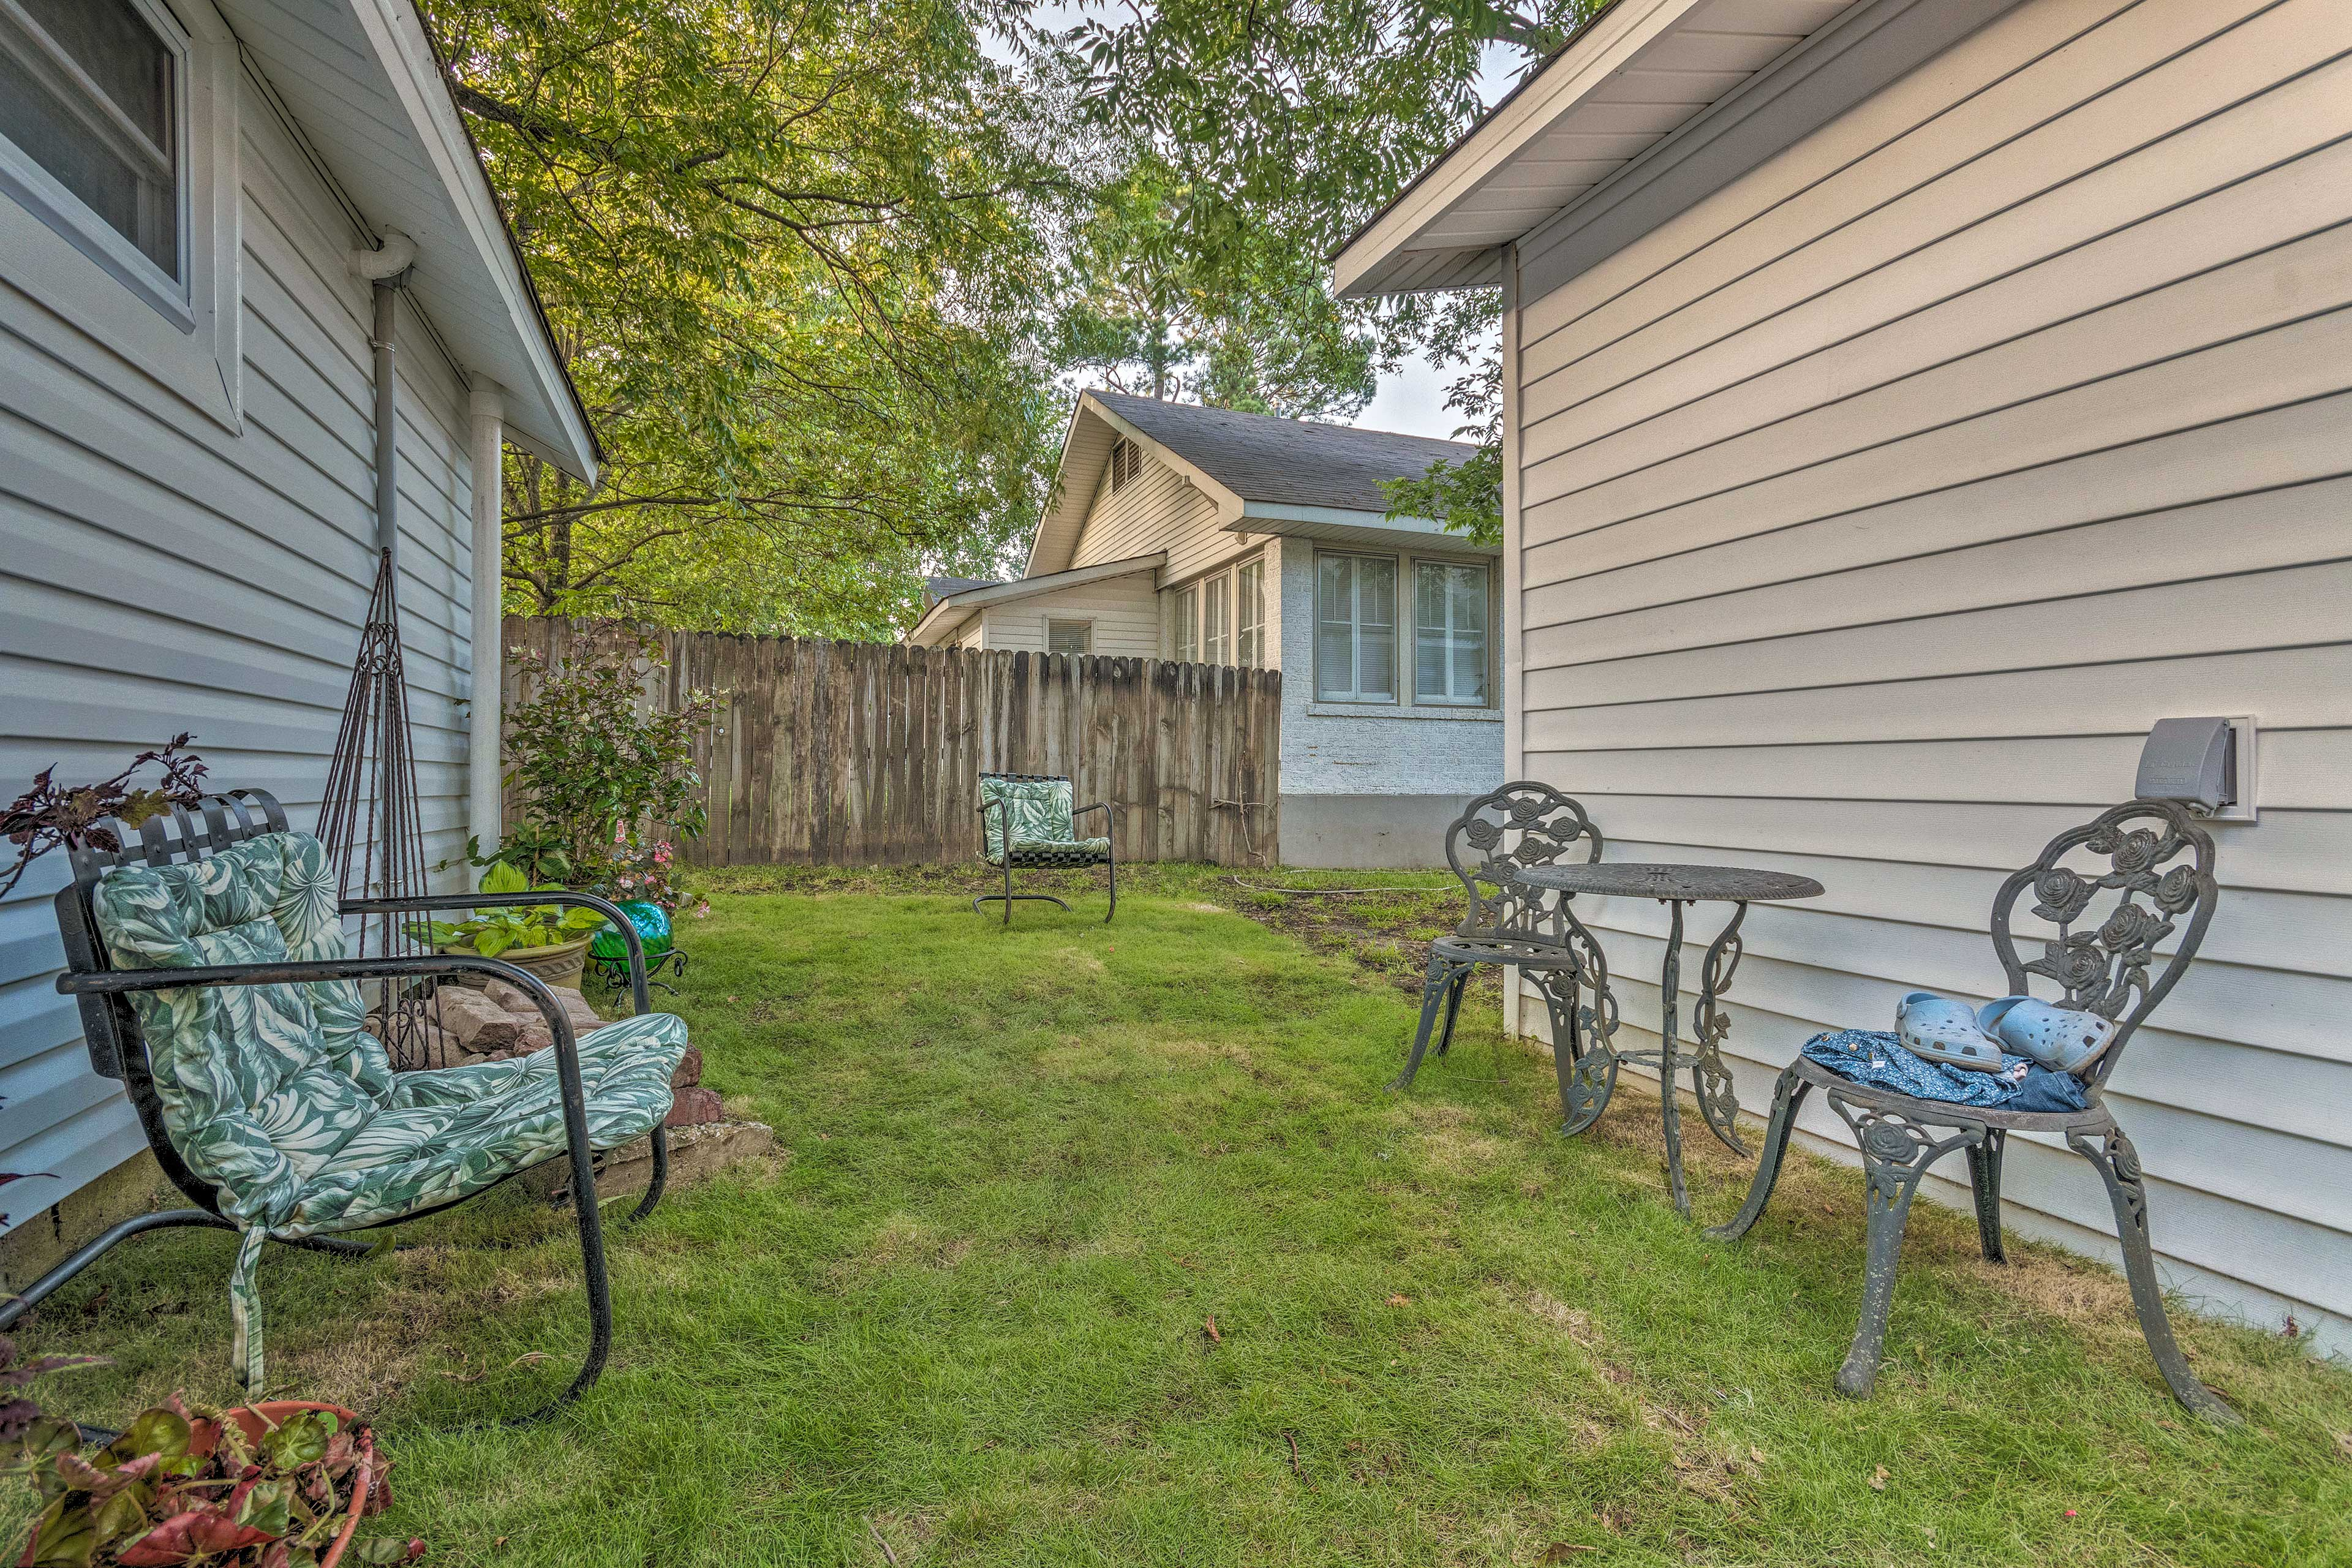 The yard offers a privacy fence.